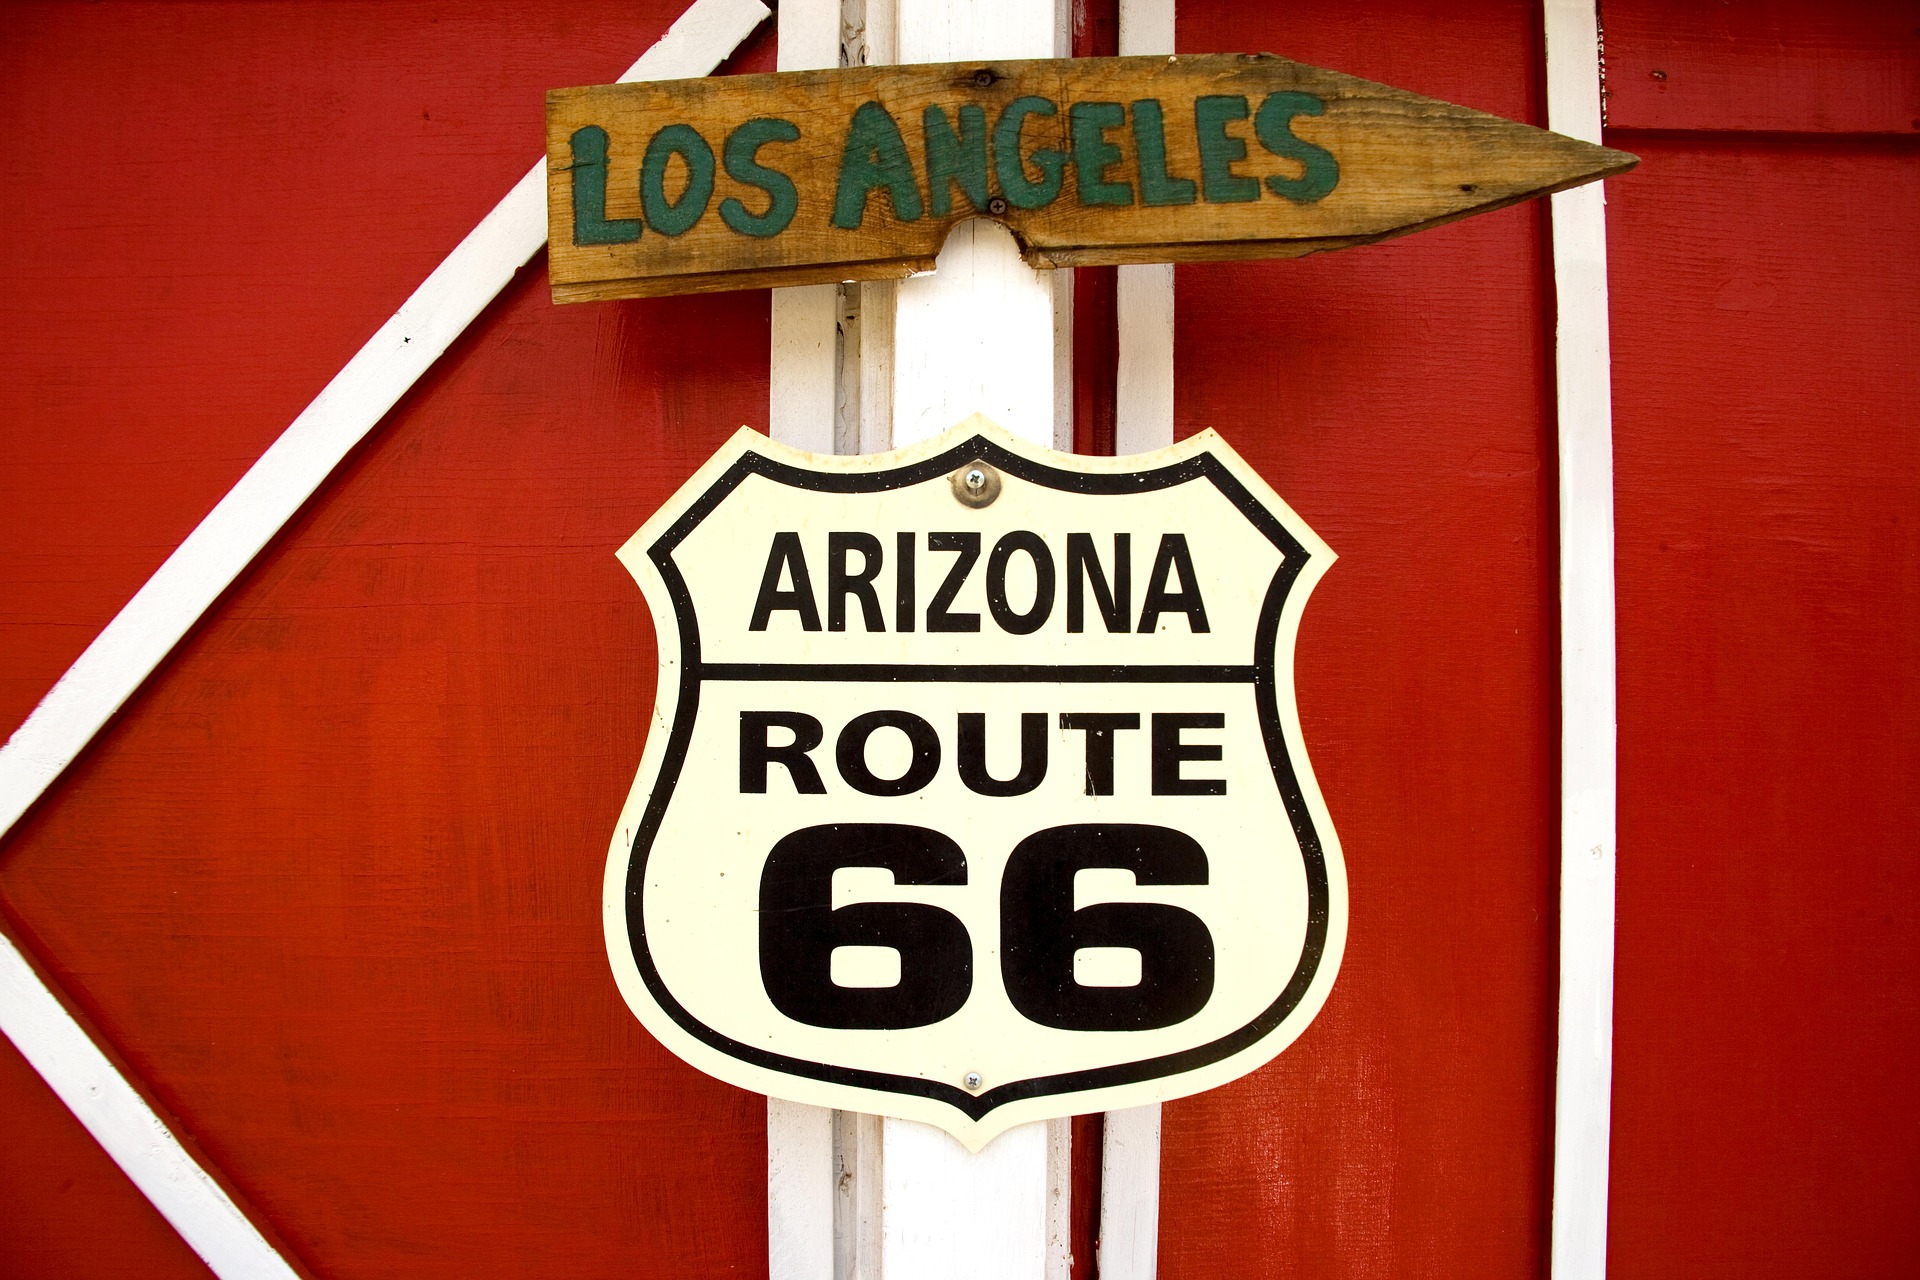 Arizona Route 66, Sign, Route, Object, Losangeles, HQ Photo